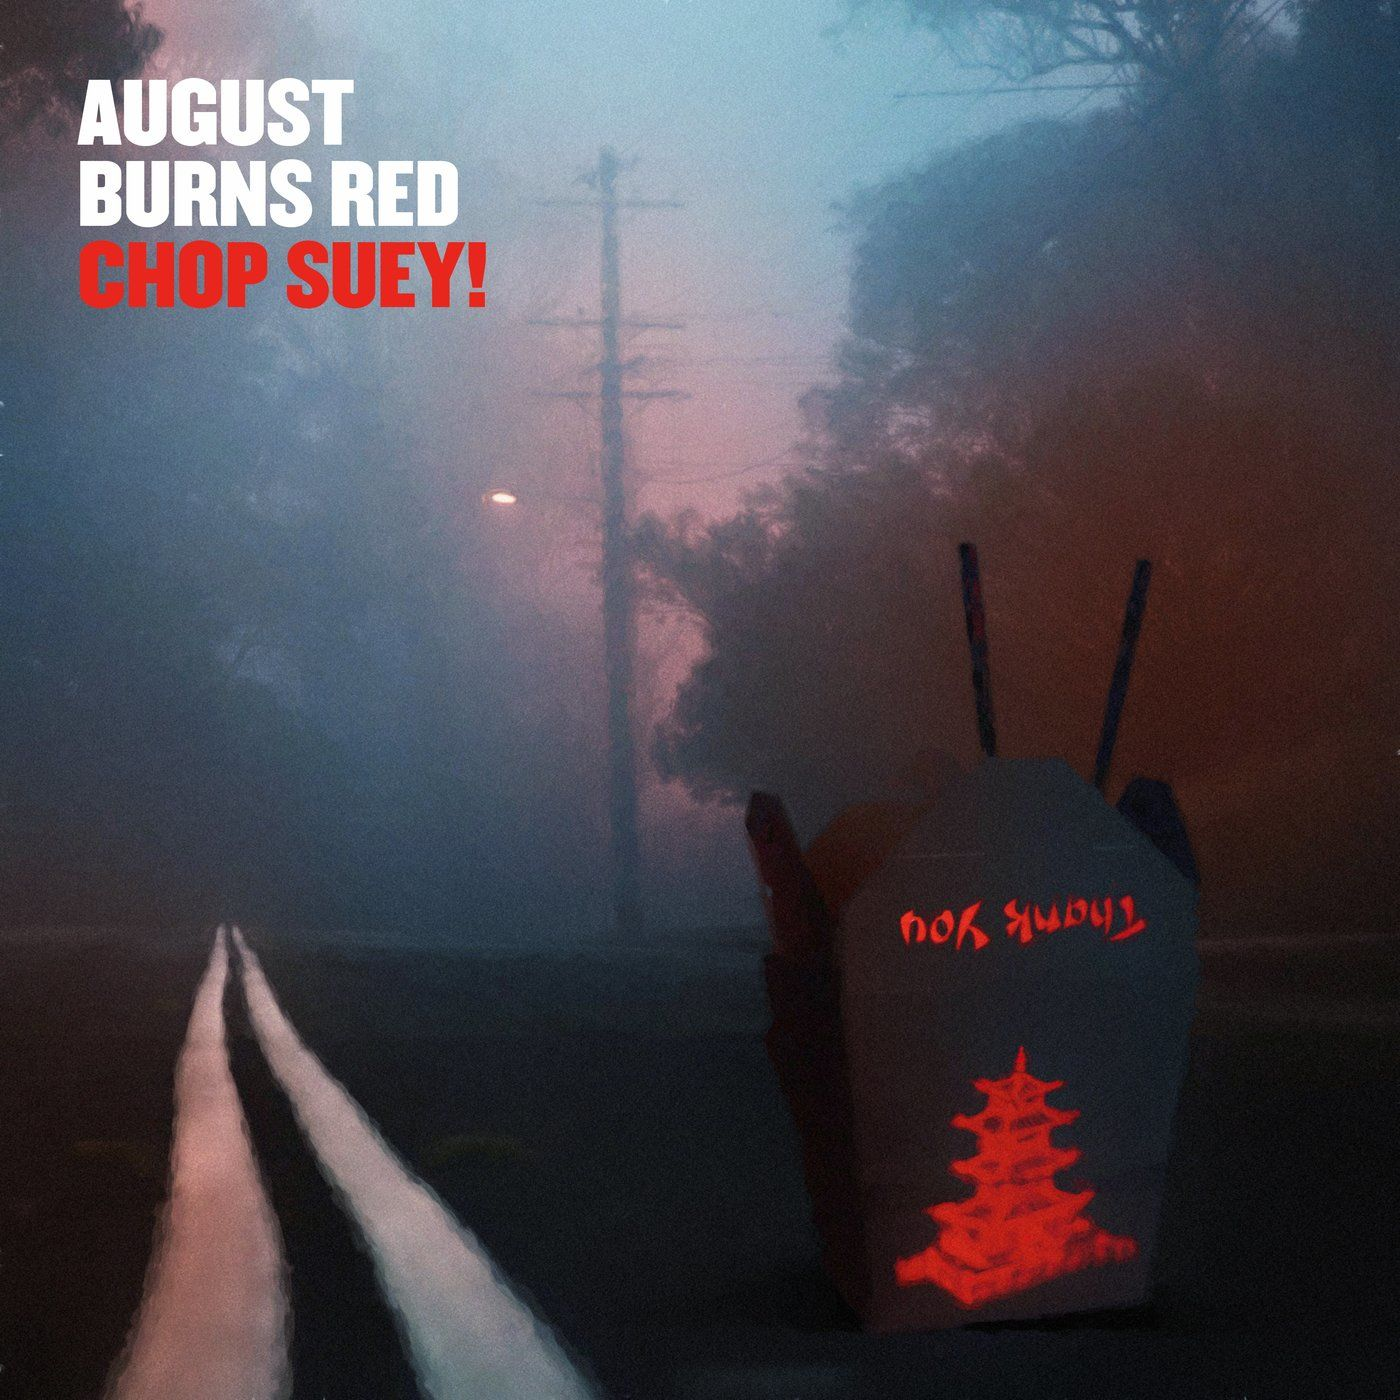 August Burns Red - Chop Suey! [single] (2020)